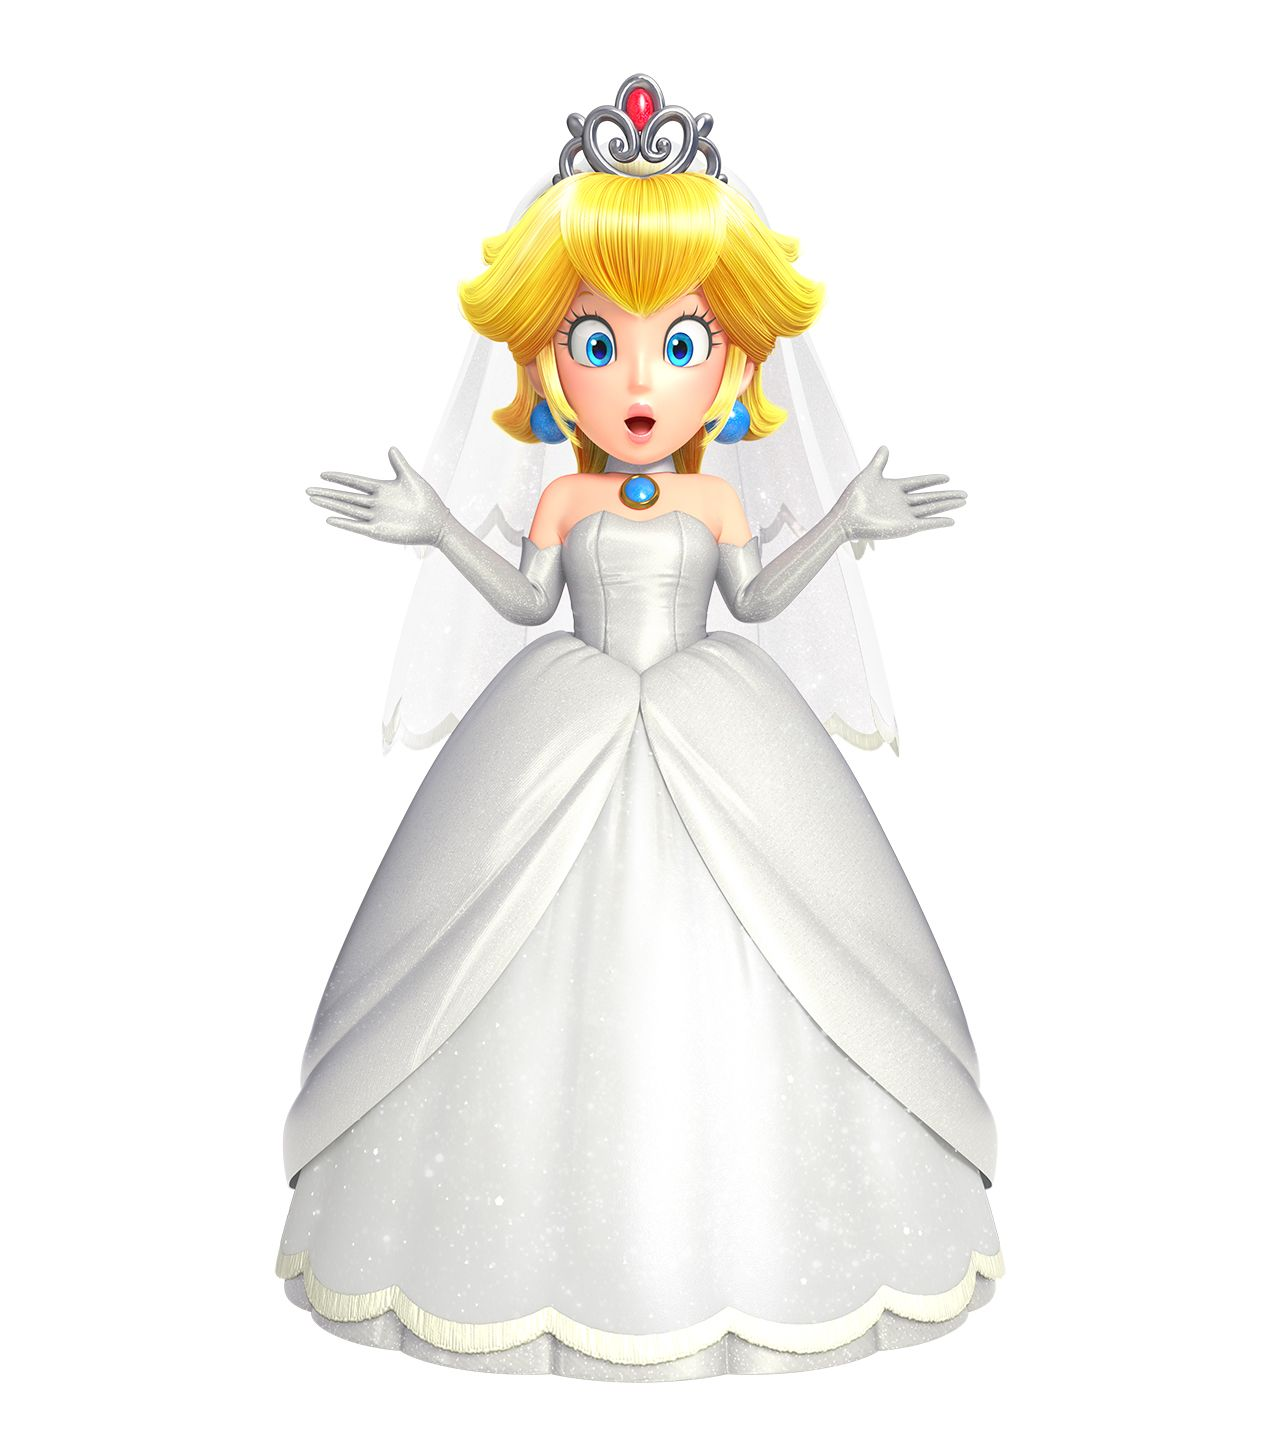 Princess Peach Cosplay Costume (Wedding) from Super Mario